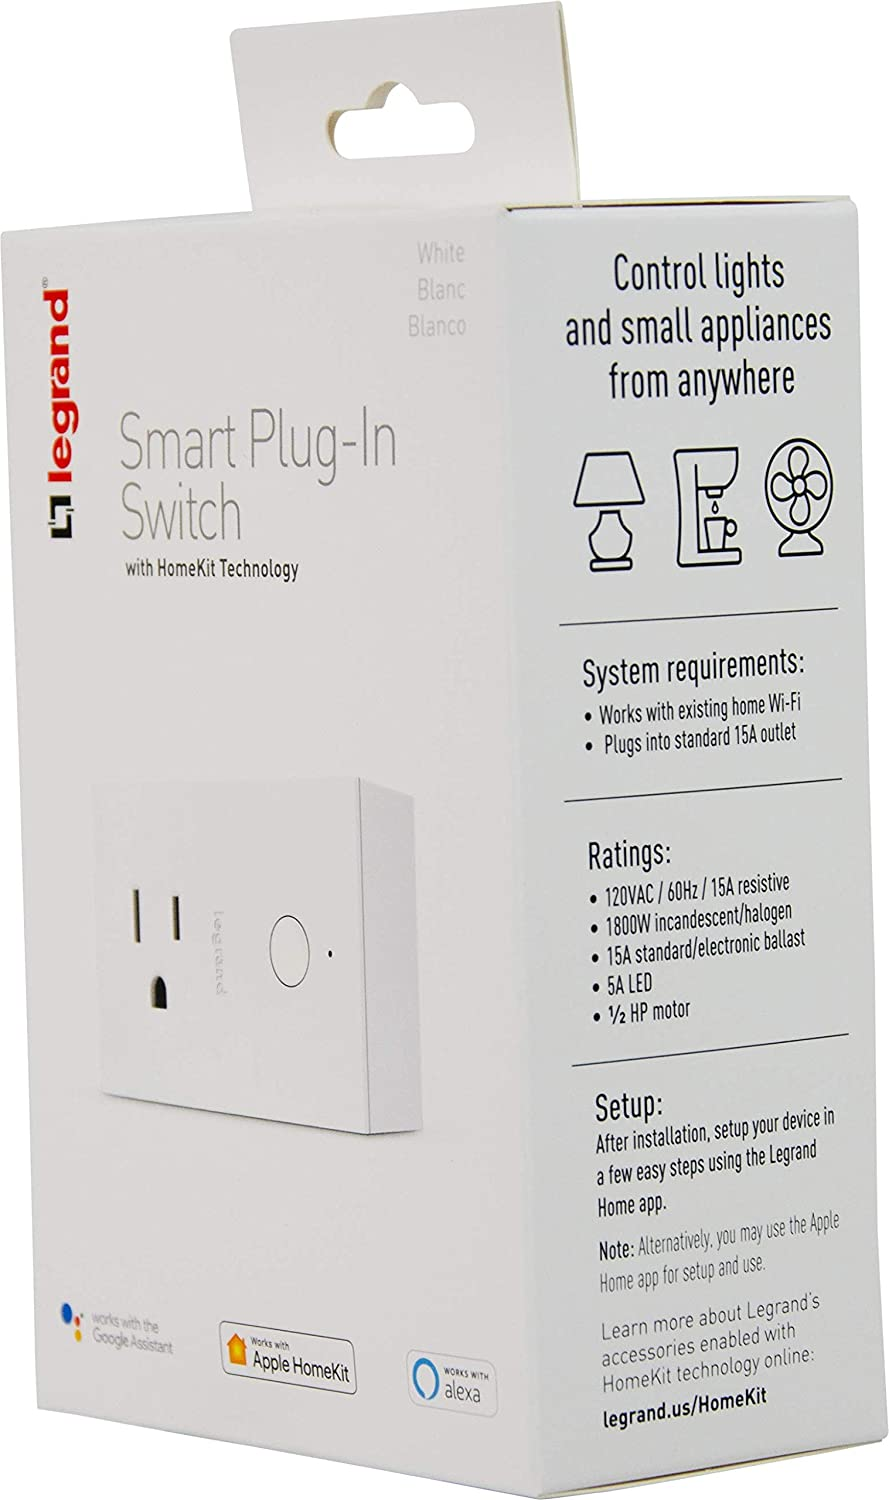 No Wiring Required, Works with Apple HomeKit Legrand-On-Q HKRP20 Smart Plug  WiFi Outlet Dimmer Switch Alexa & Google Assistant Outlet SwitchesElets Technomedia